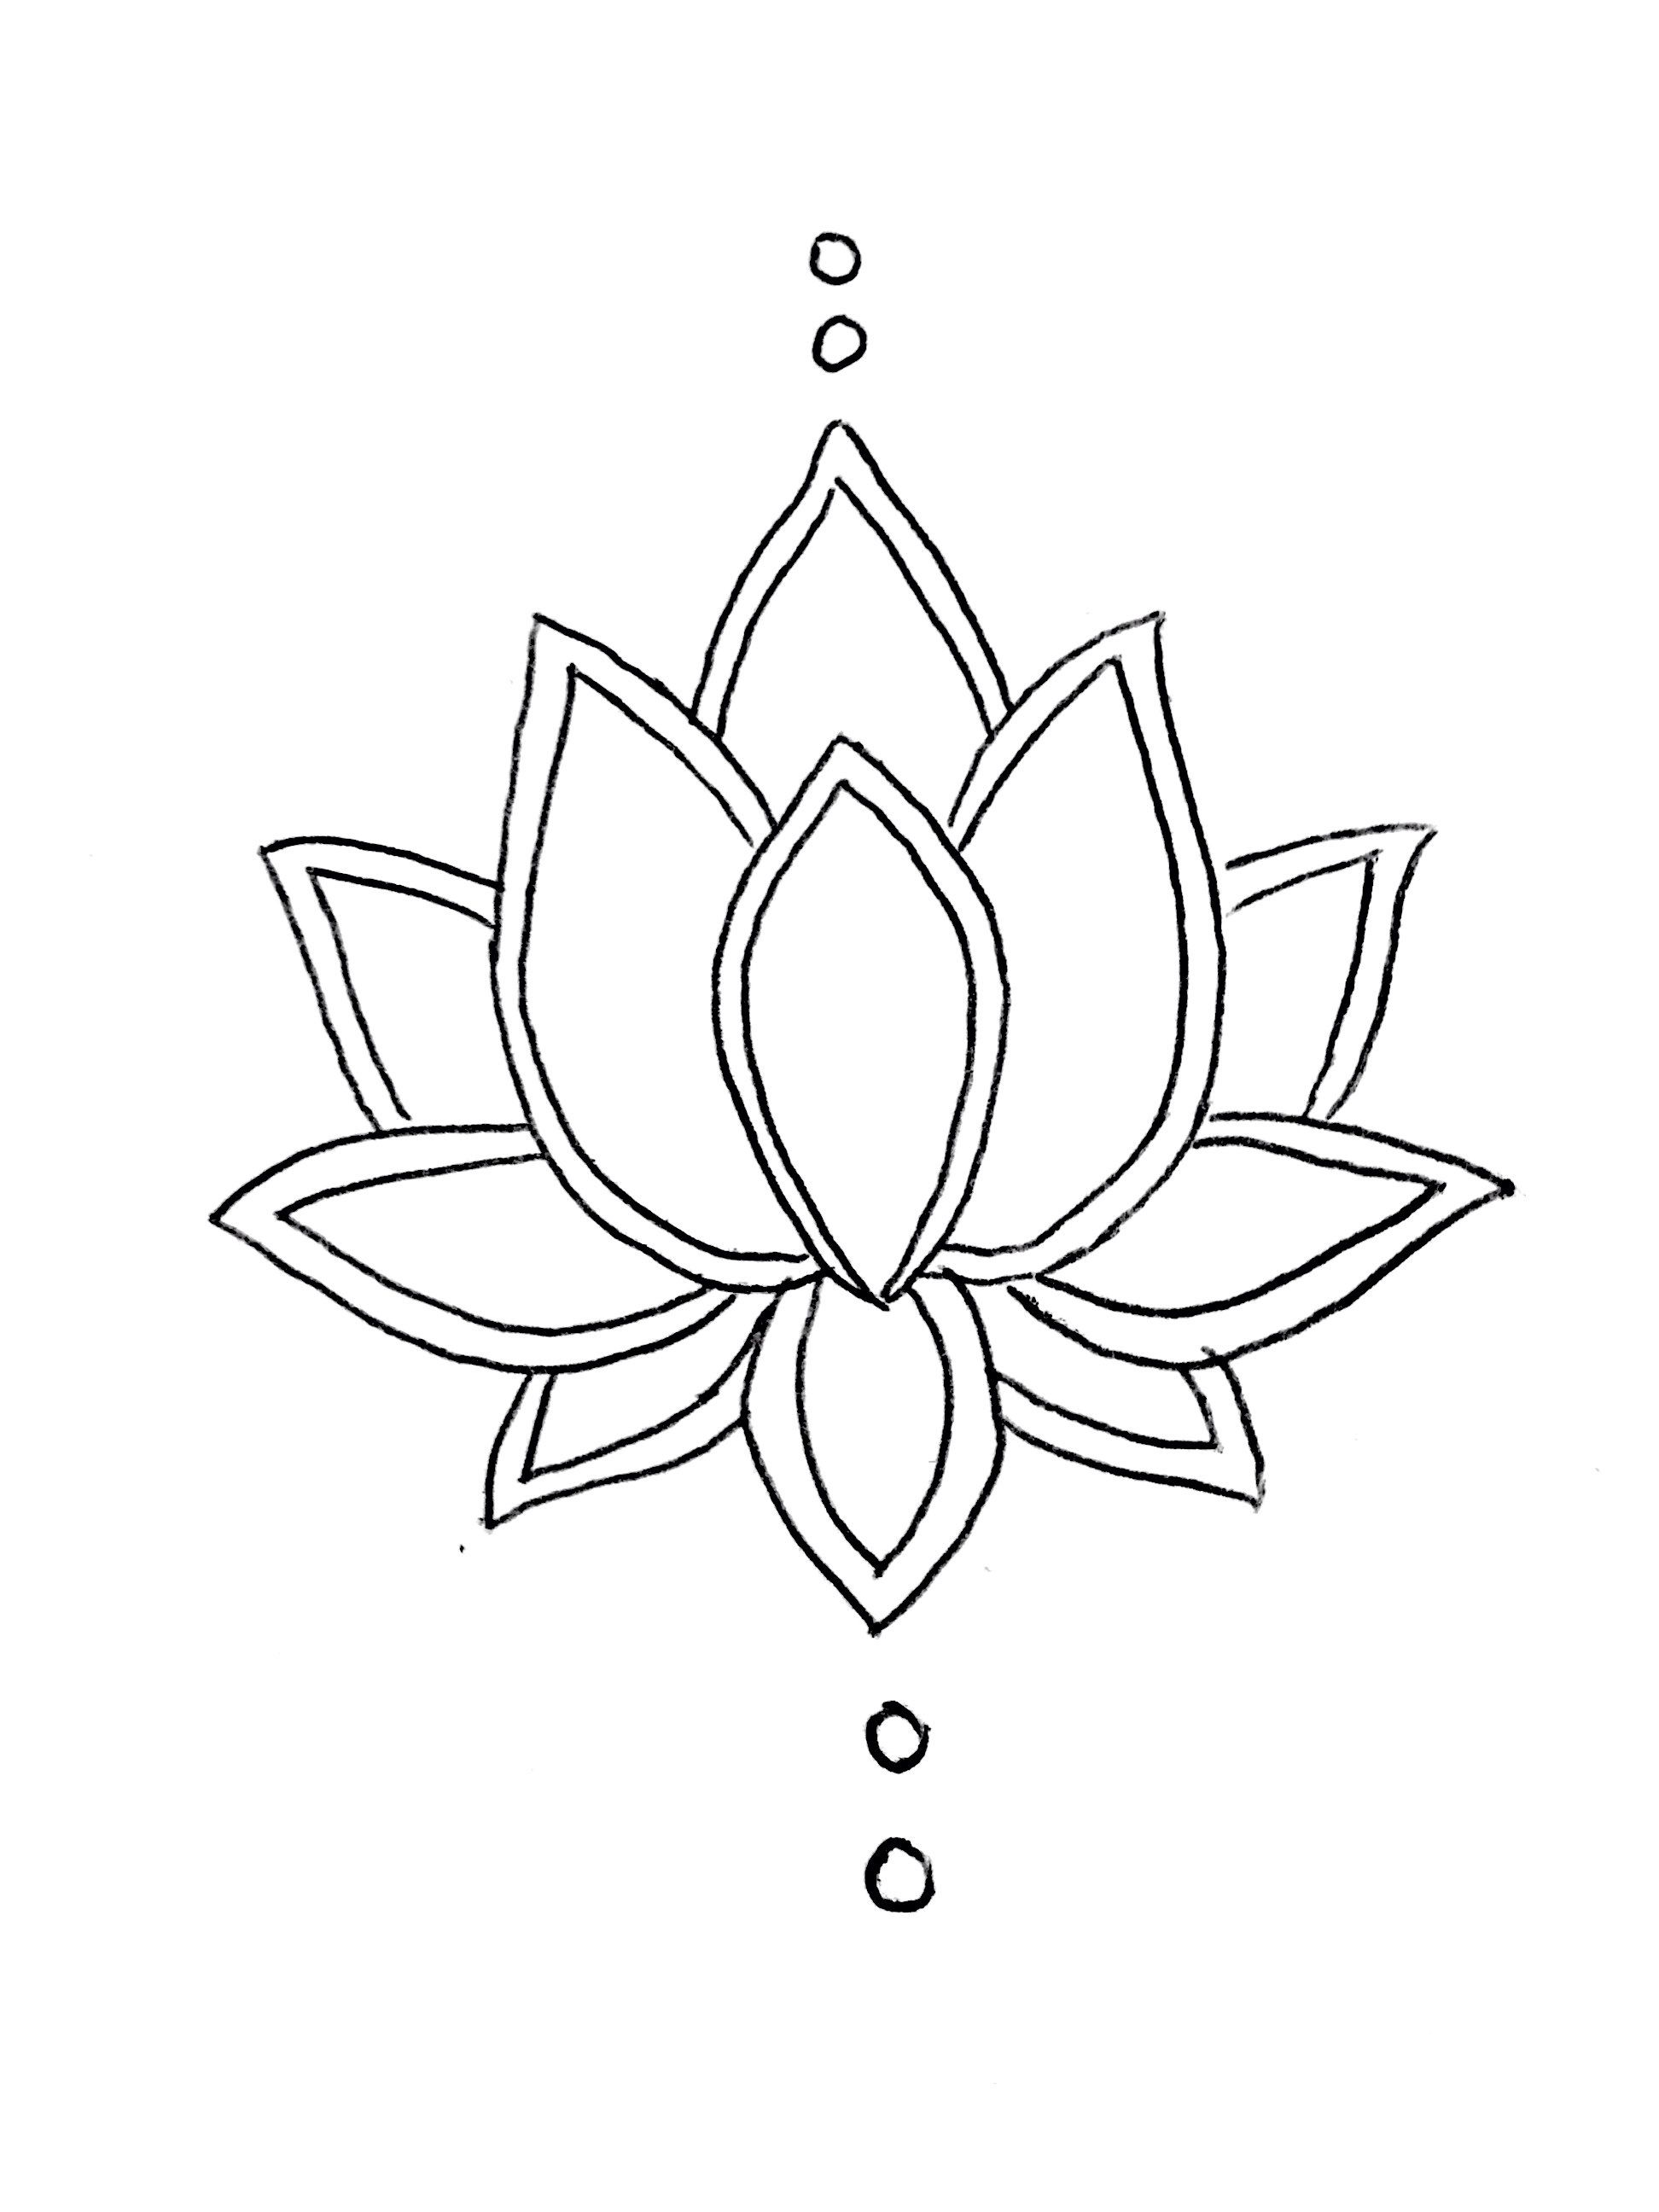 Pin By Justyna On Tattoo Inspo Beaded Flowers Patterns Flower Outline Flower Drawing